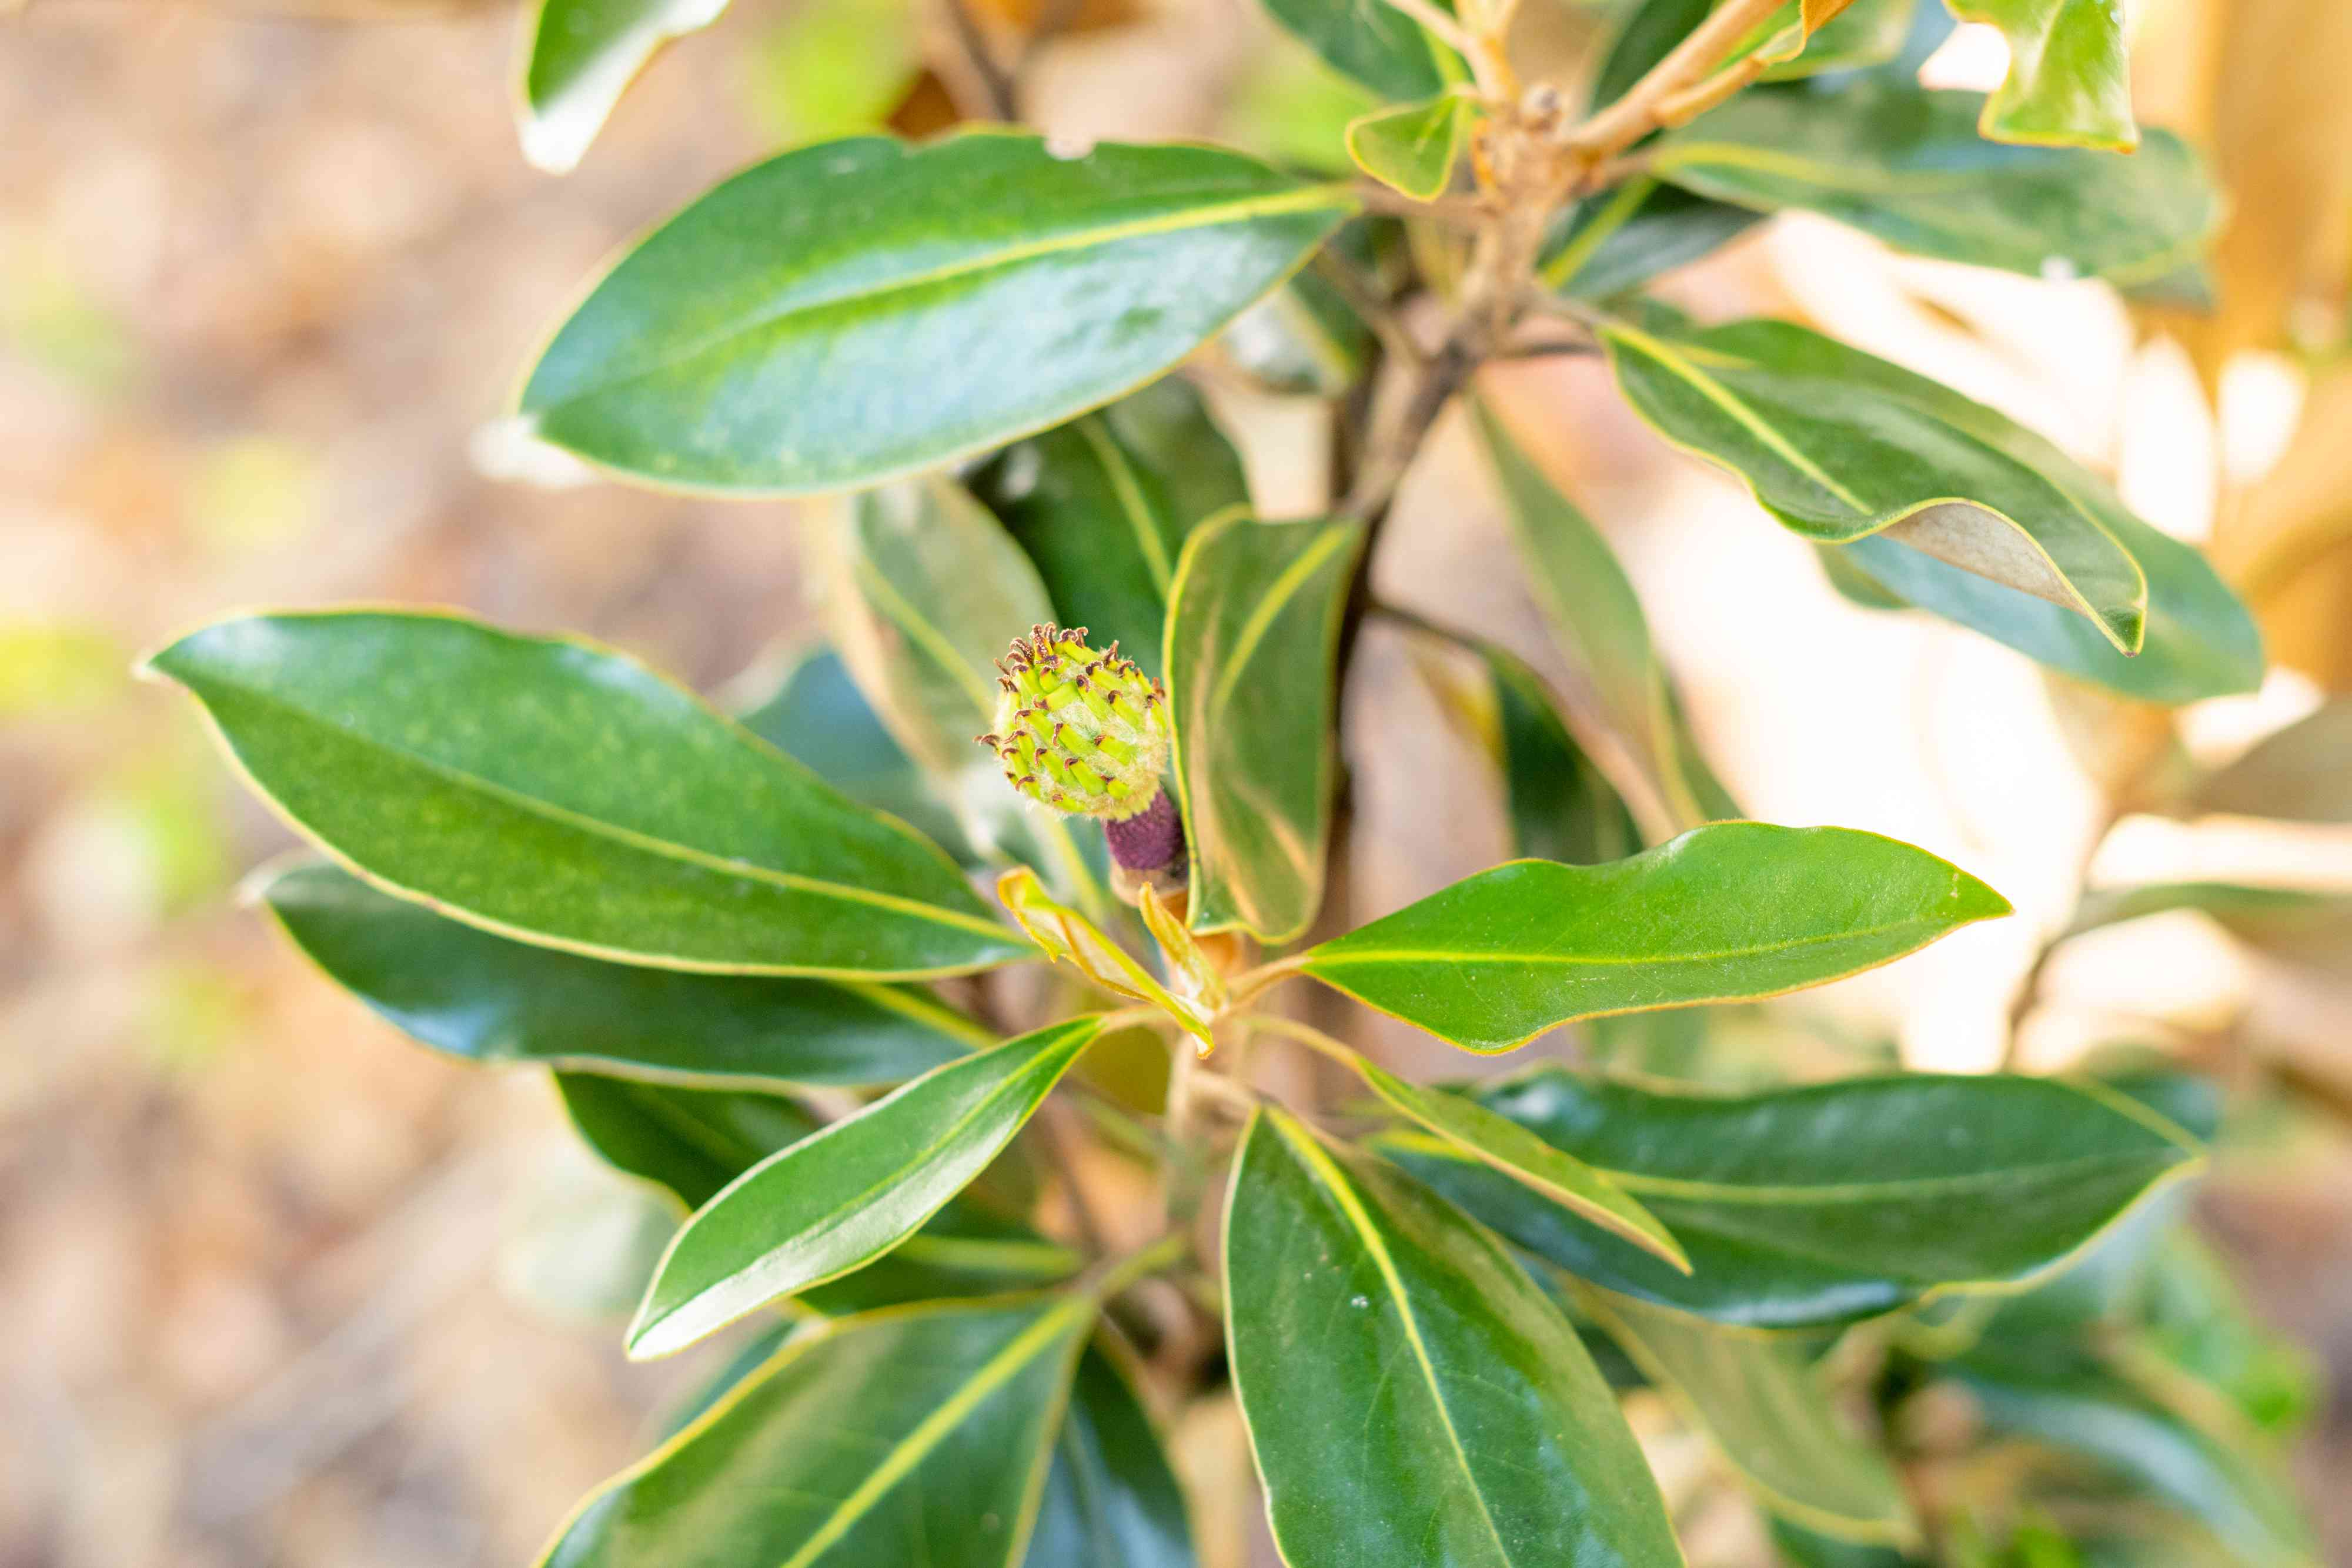 Potted magnolia tree with waxy leaves and bud